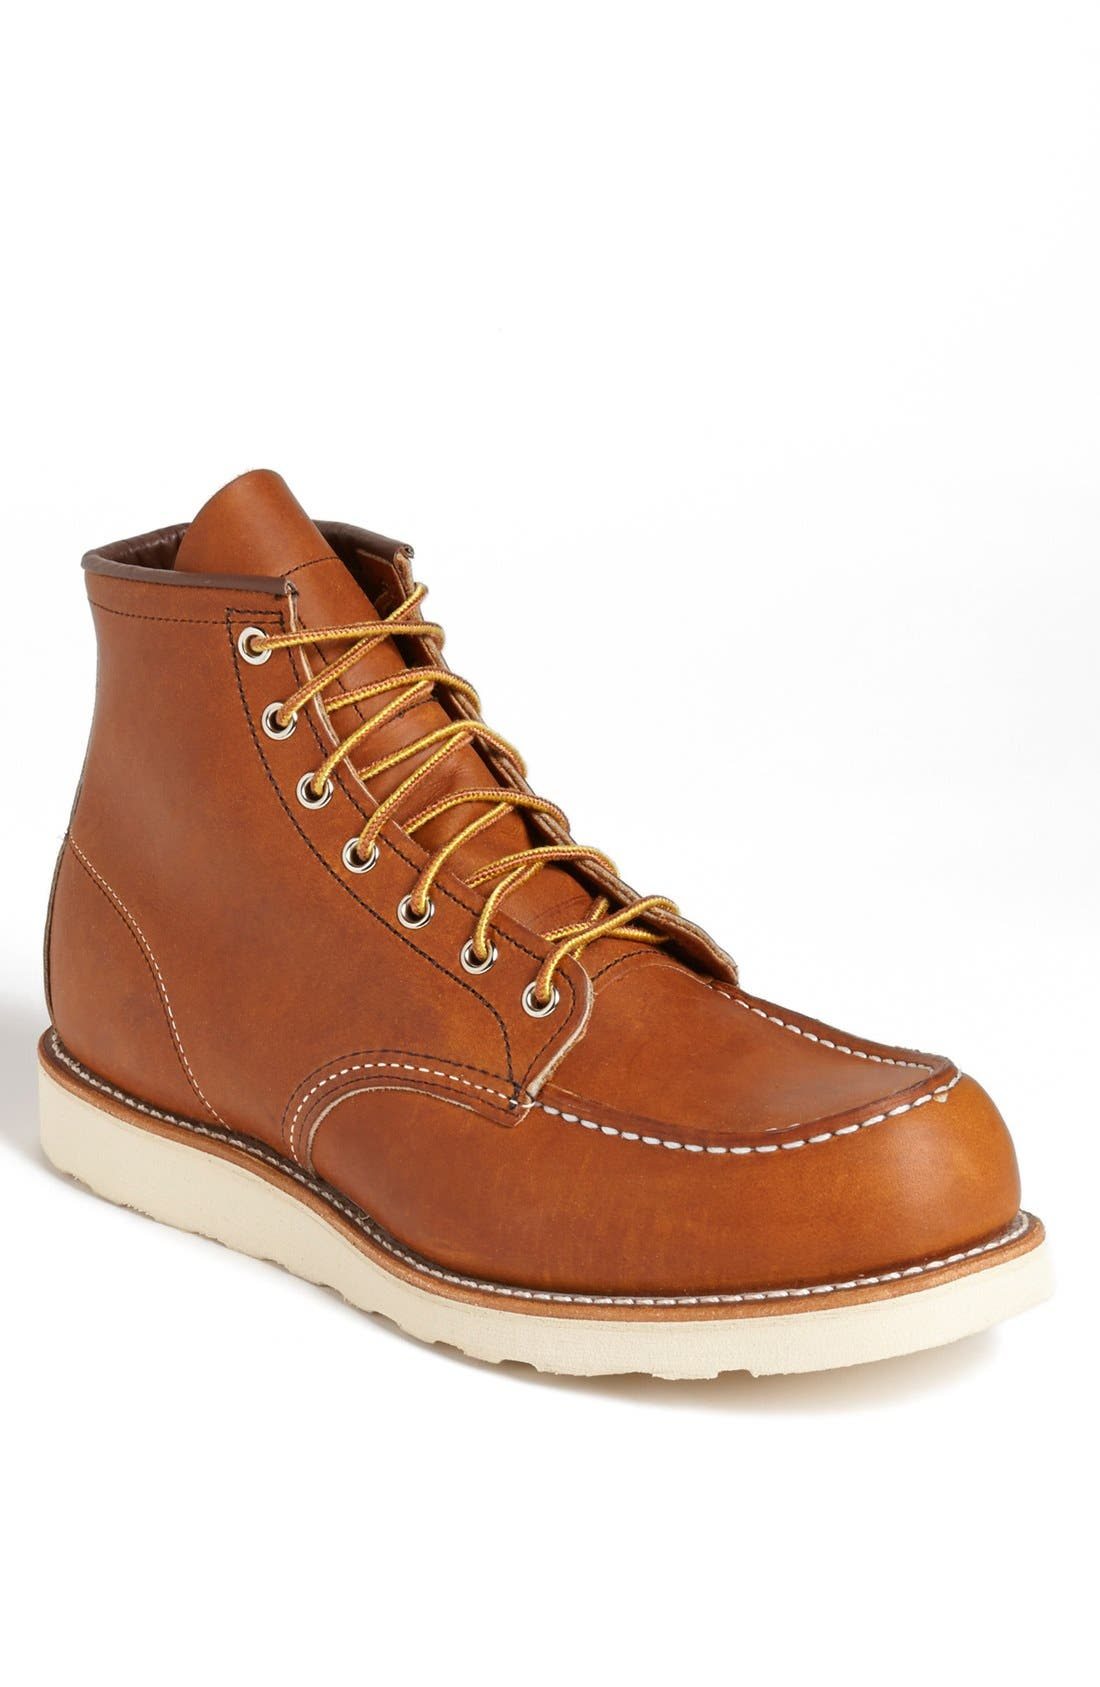 '875' 6 Inch Moc Toe Boot,                             Main thumbnail 1, color,                             200